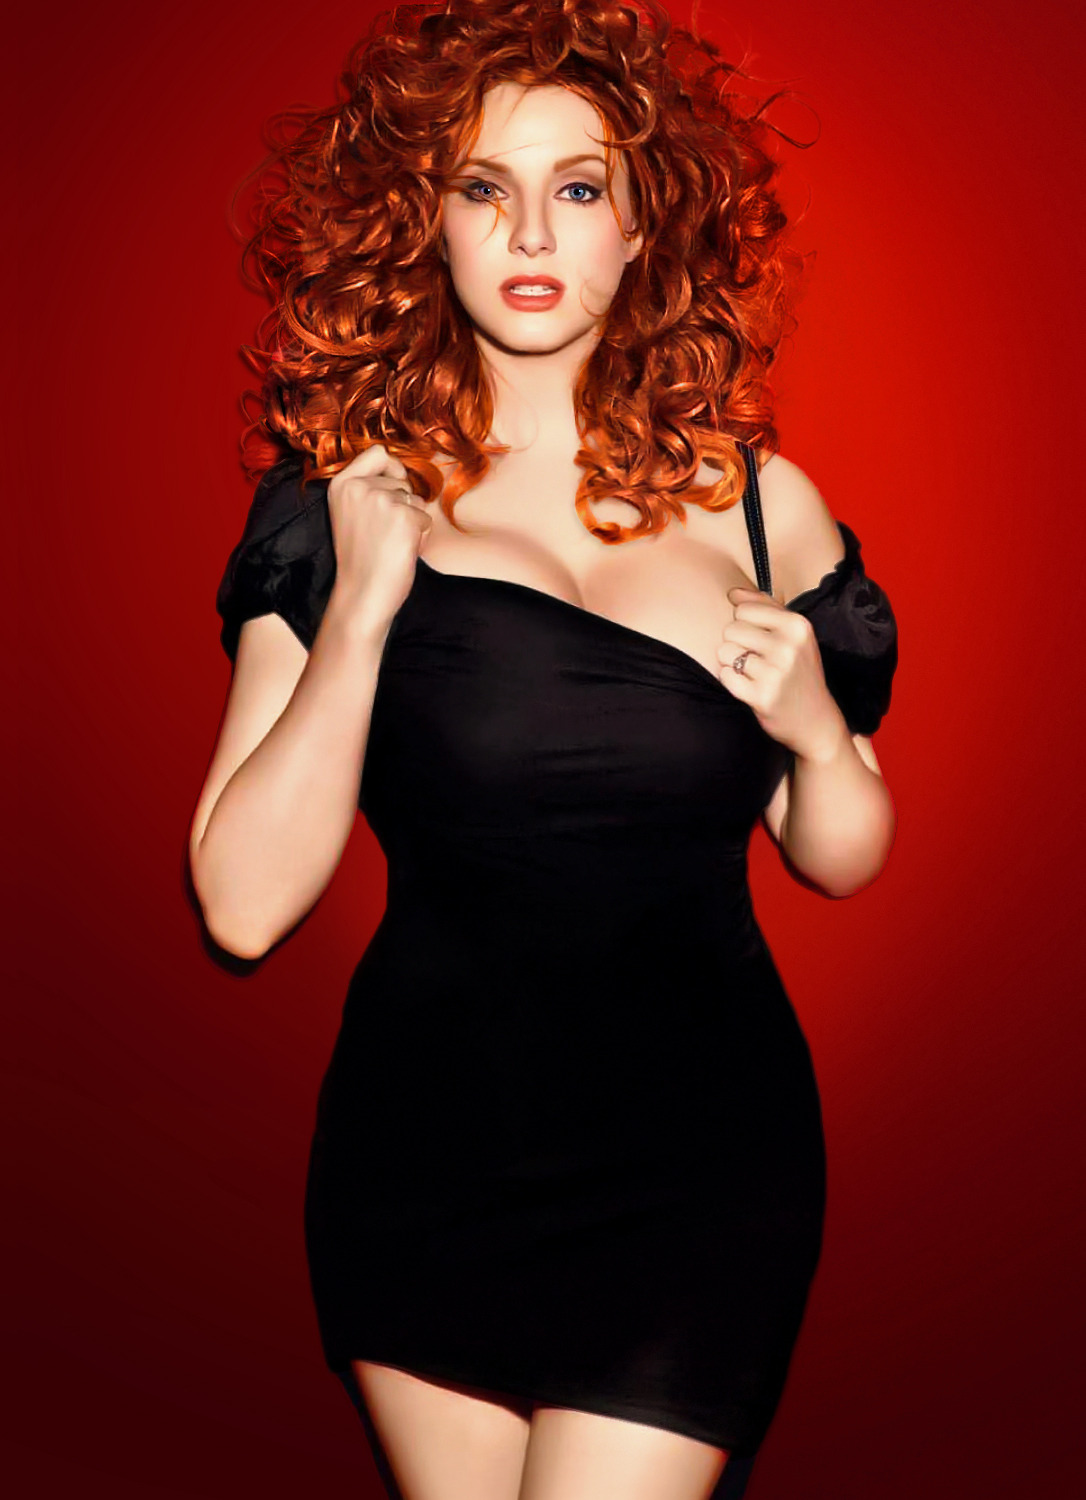 for-redheads:  Christina Hendricks by James White, Esquire Cover 2010